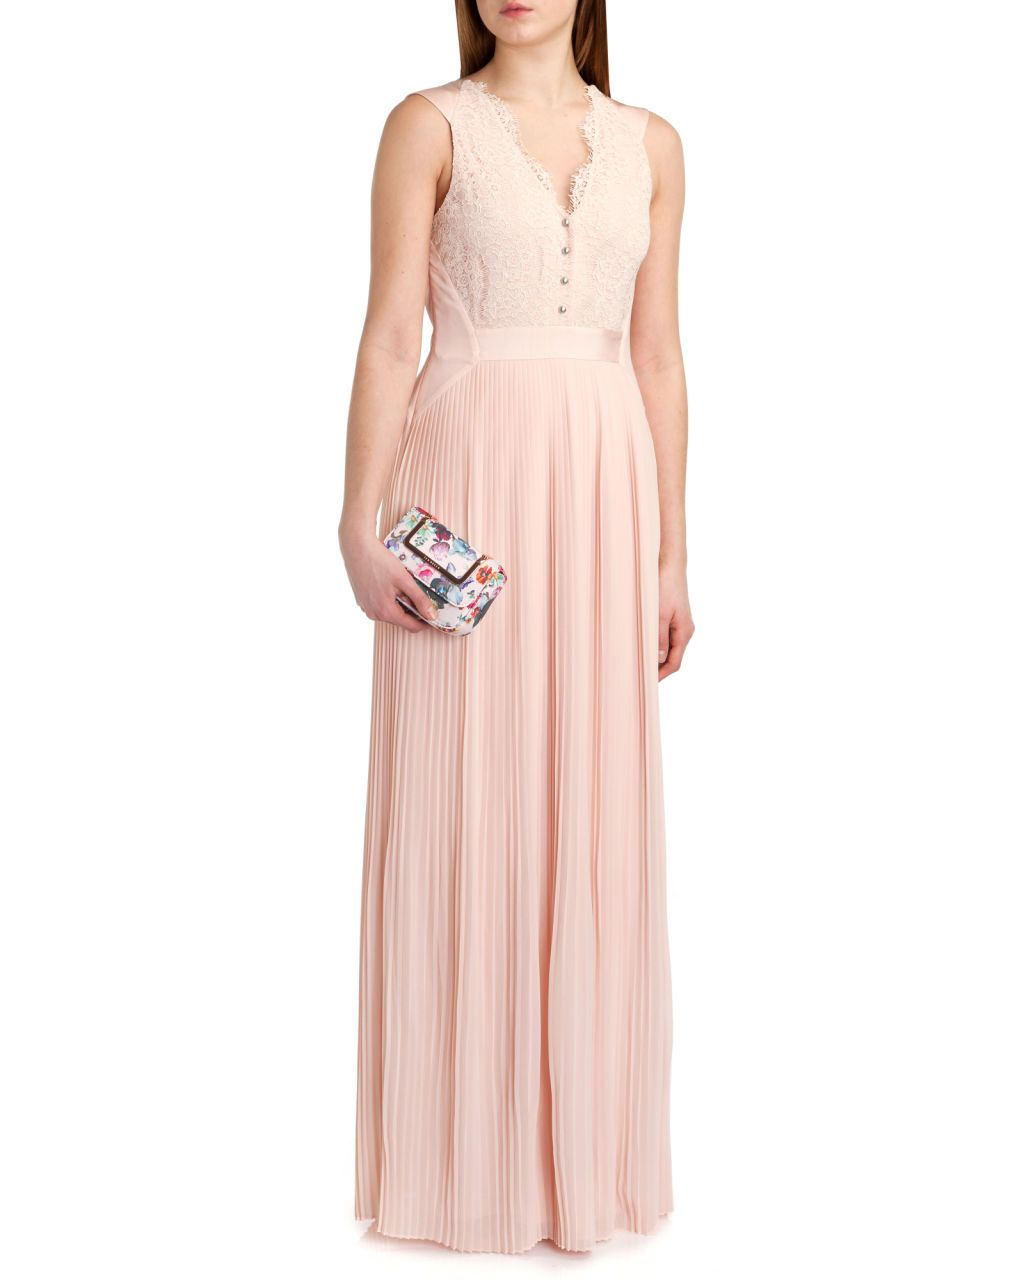 Tedbaker reversible pleated maxi dress nude pink was 425 stacey b maxi dresses reversible fashion dresses news ombrellifo Image collections